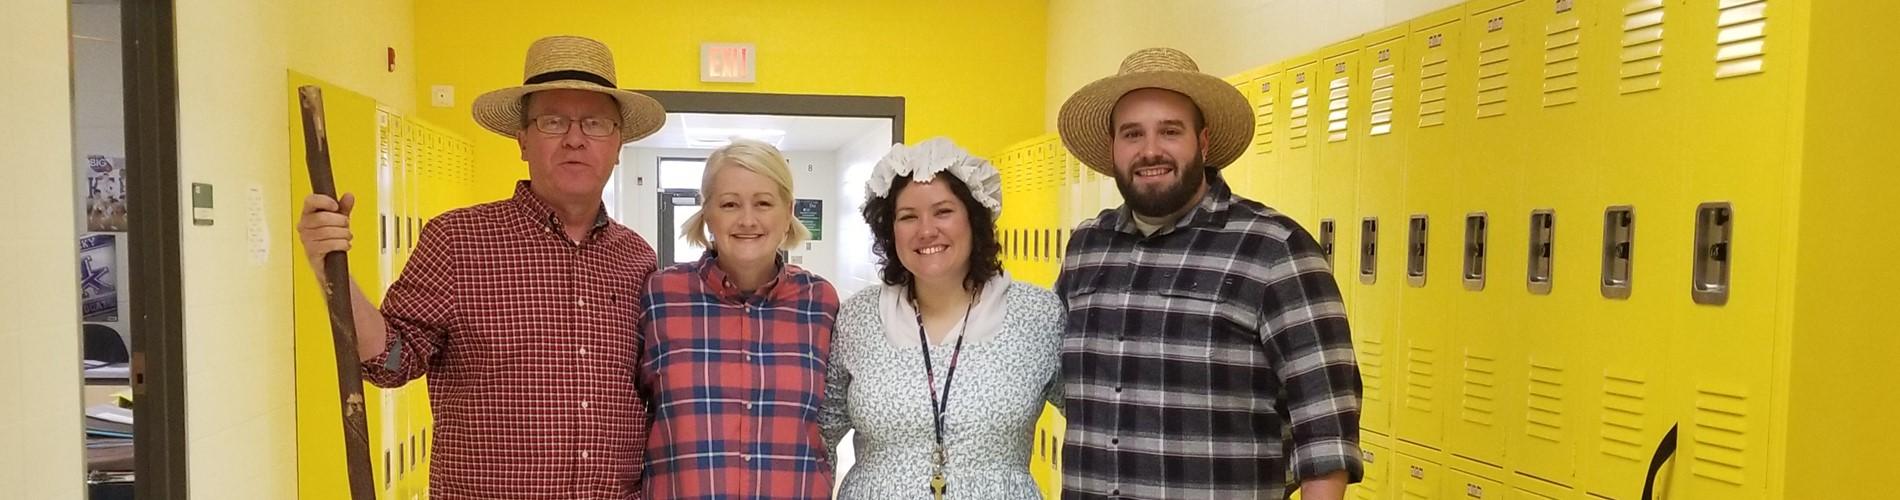 8th Grade Fun! Mr. Adkisson, Mrs. Holbrook, Mrs. Davis, Mr. Sams